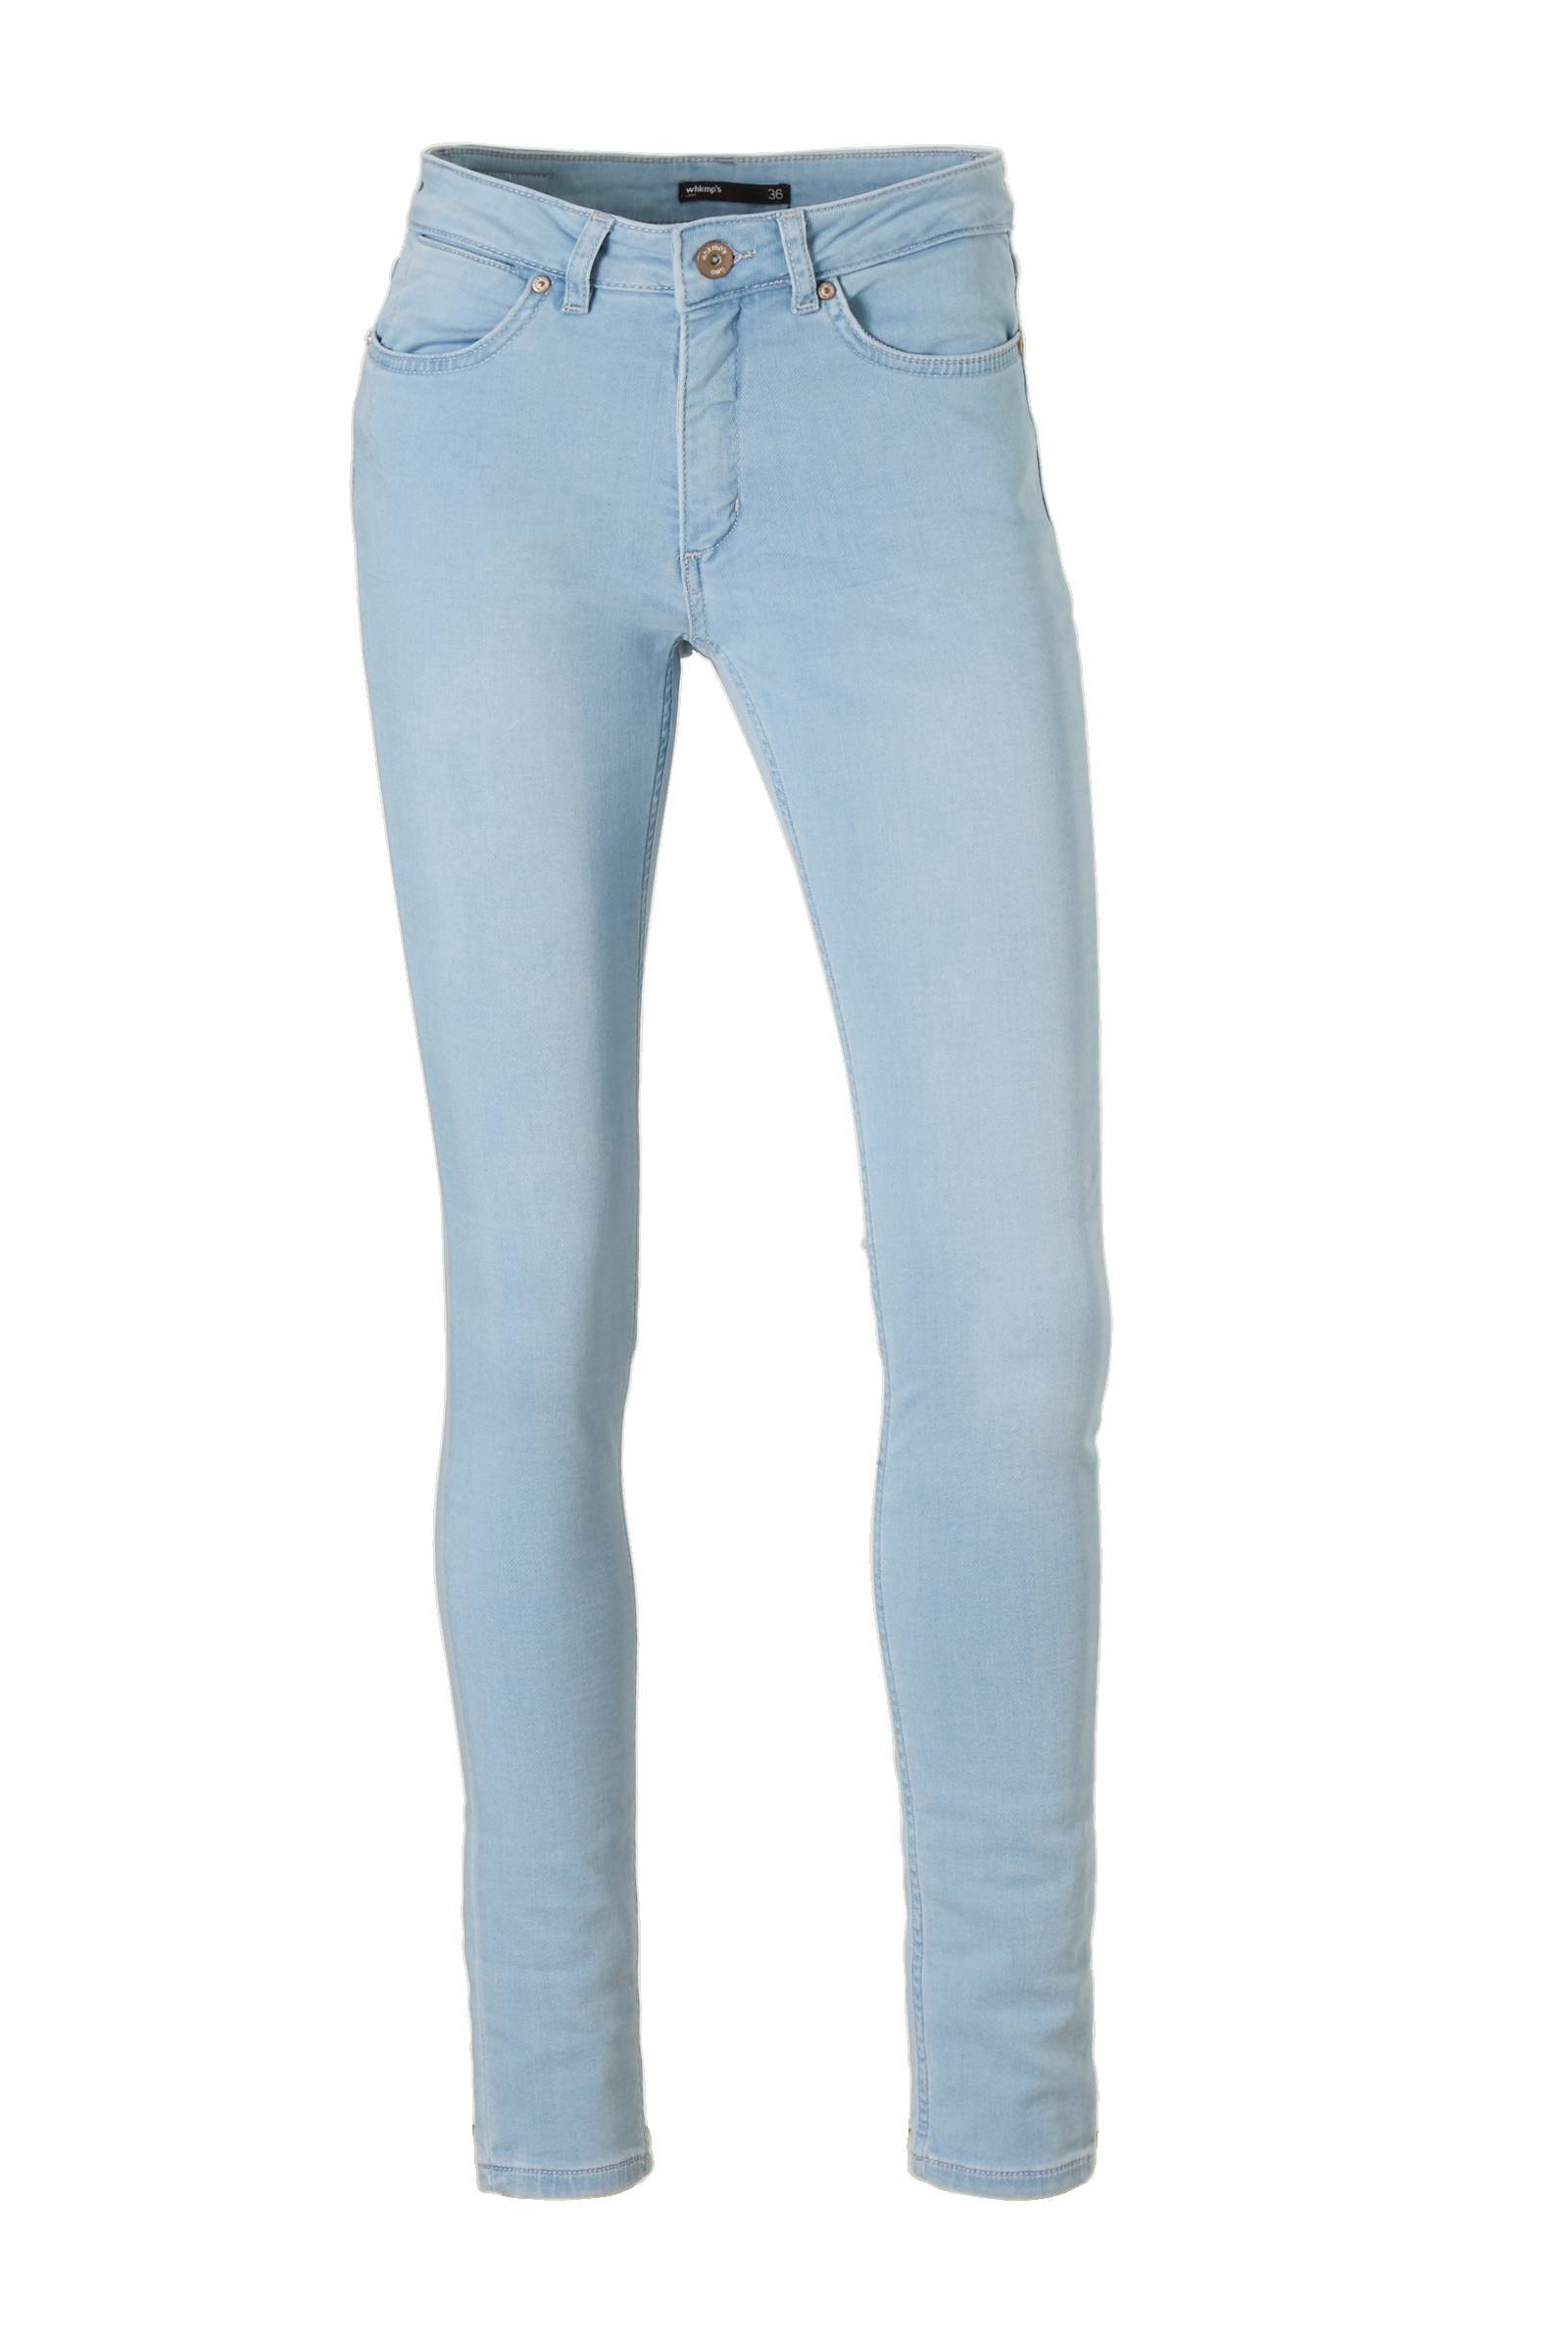 product afbeelding whkmp's own skinny jog jeans (dames)